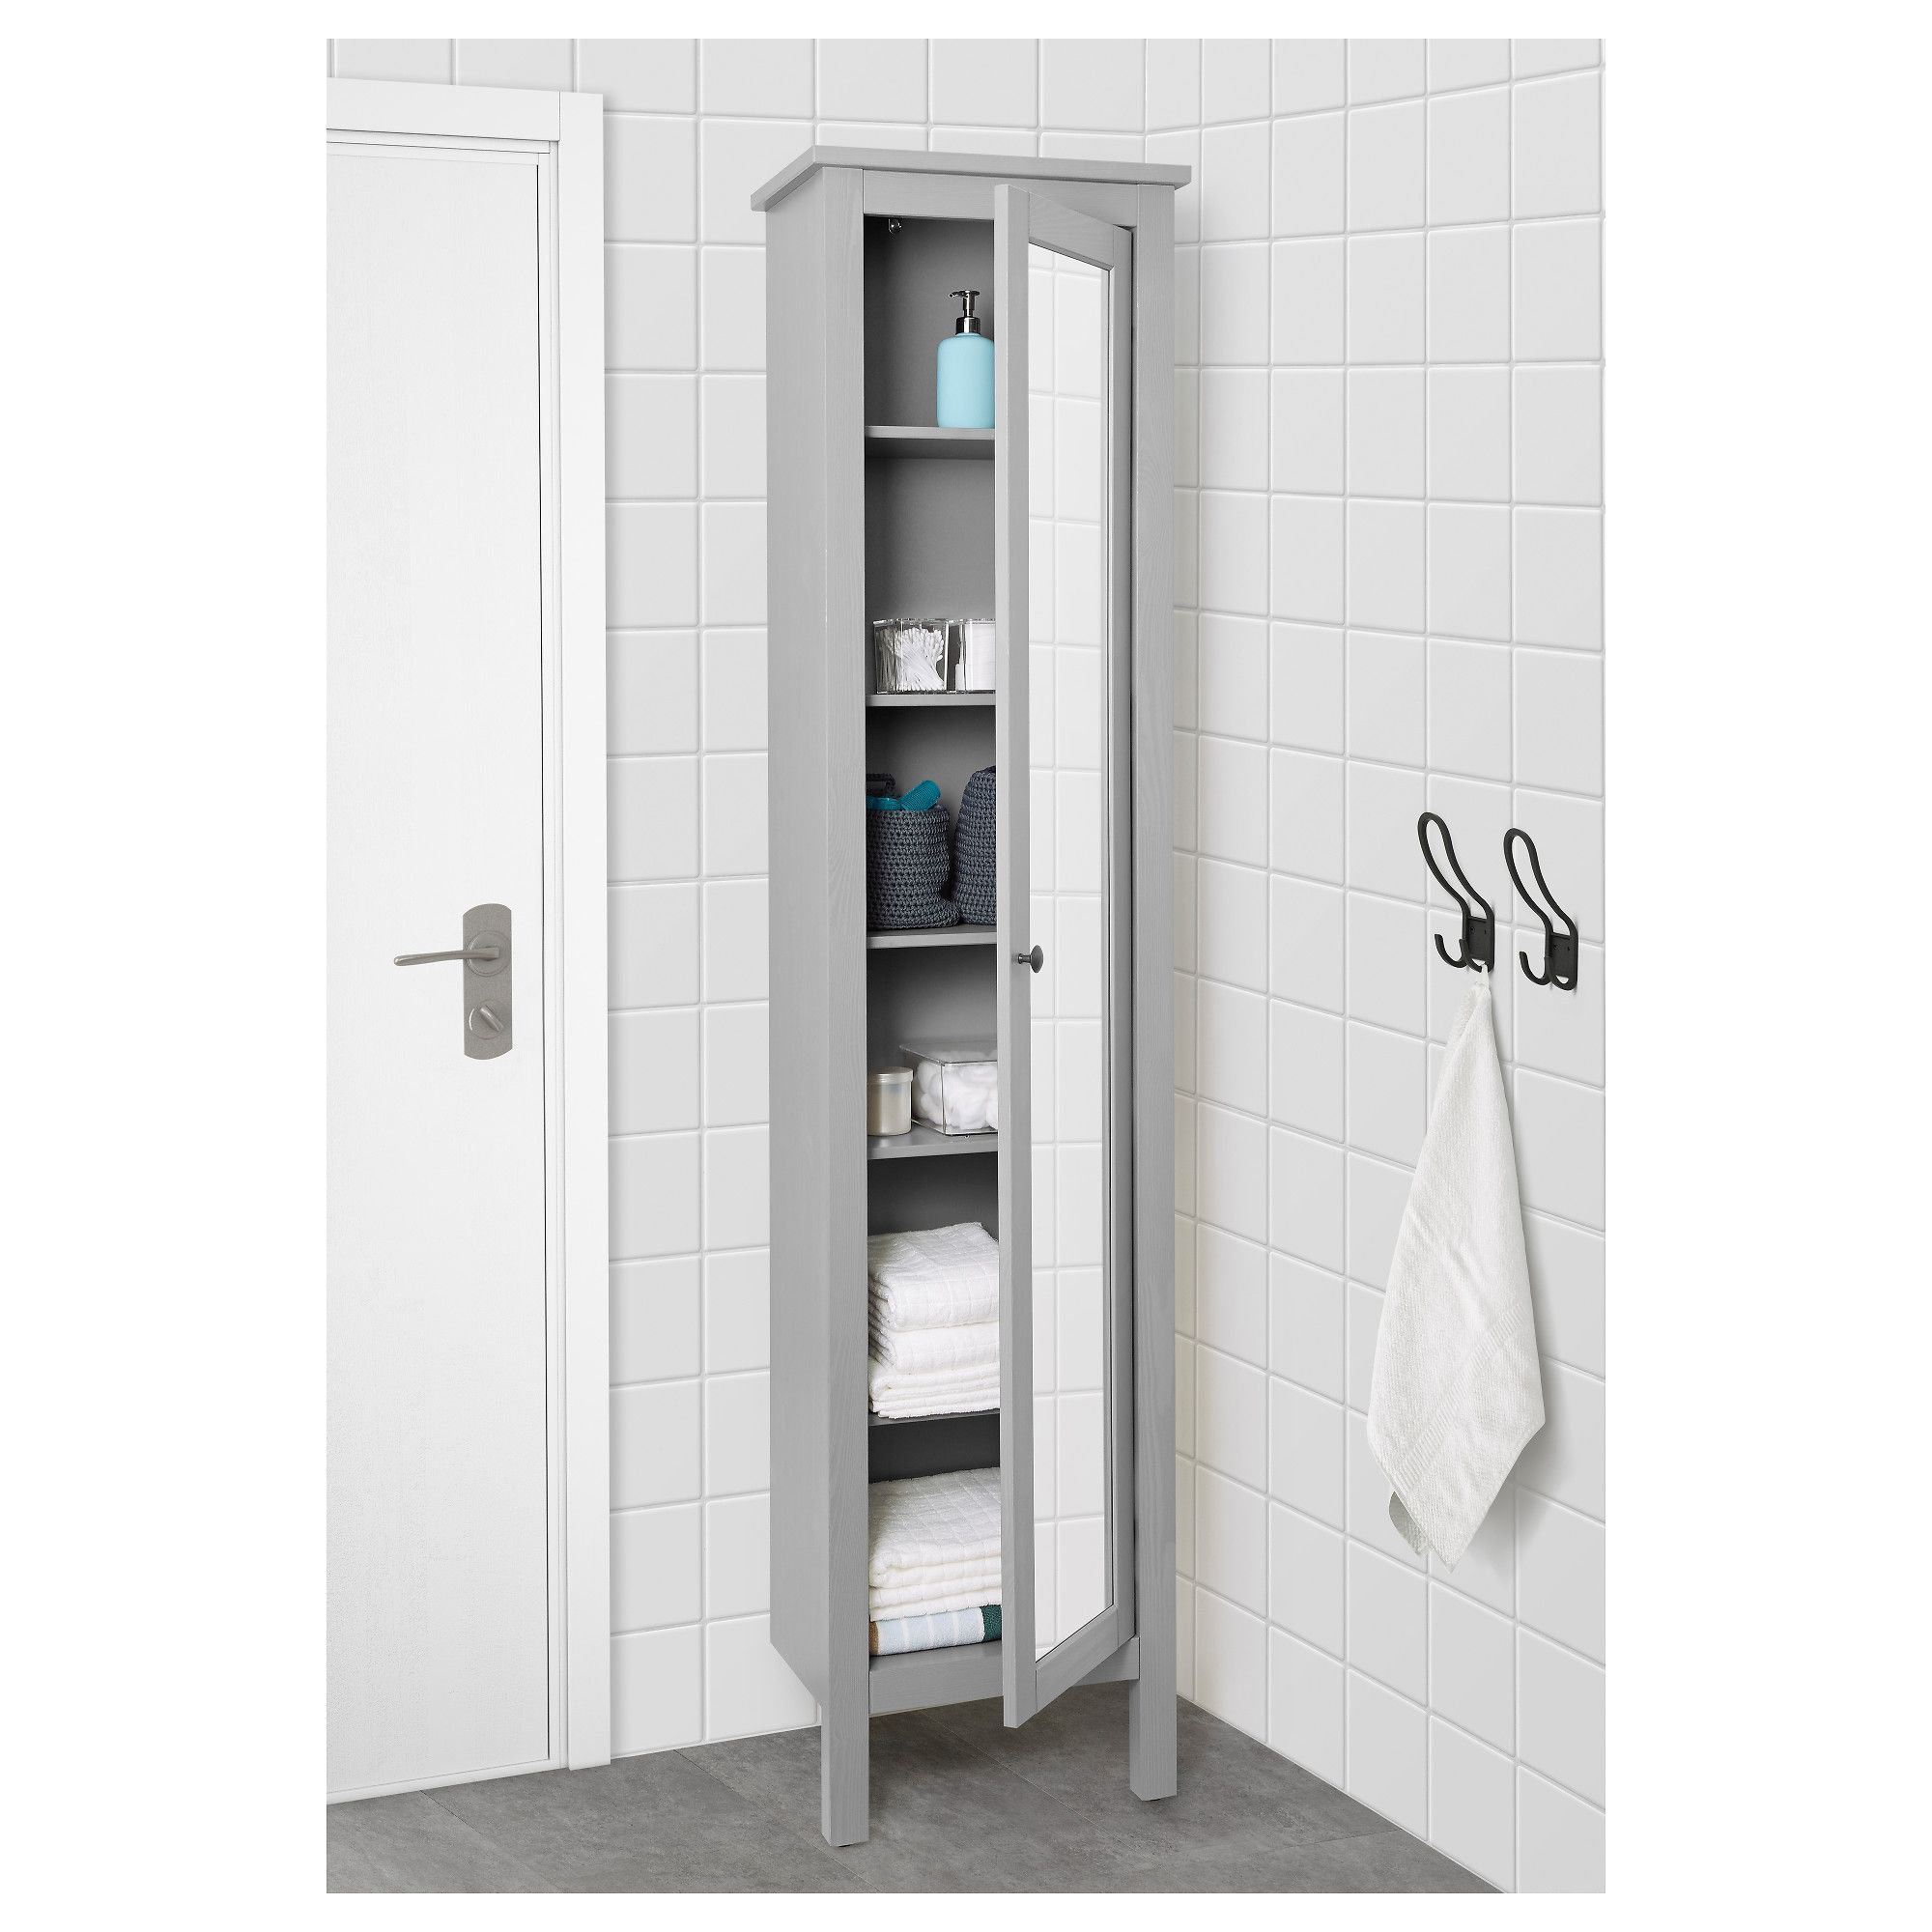 Le Meilleur Ikea Hemnes High Cabinet With Mirror Door Gray Ce Mois Ci